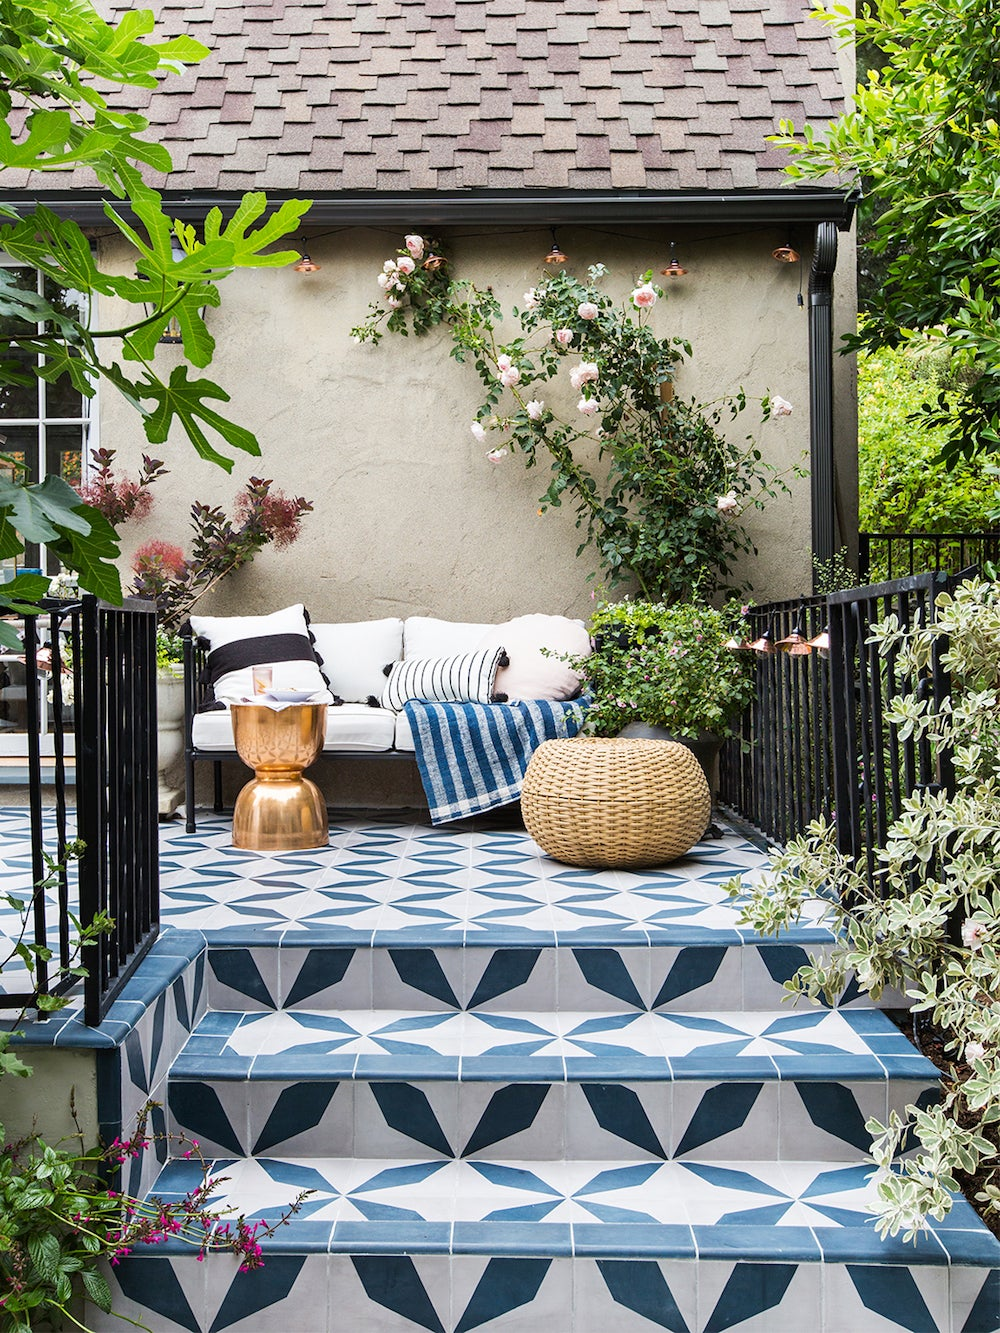 blue and white tiled patio